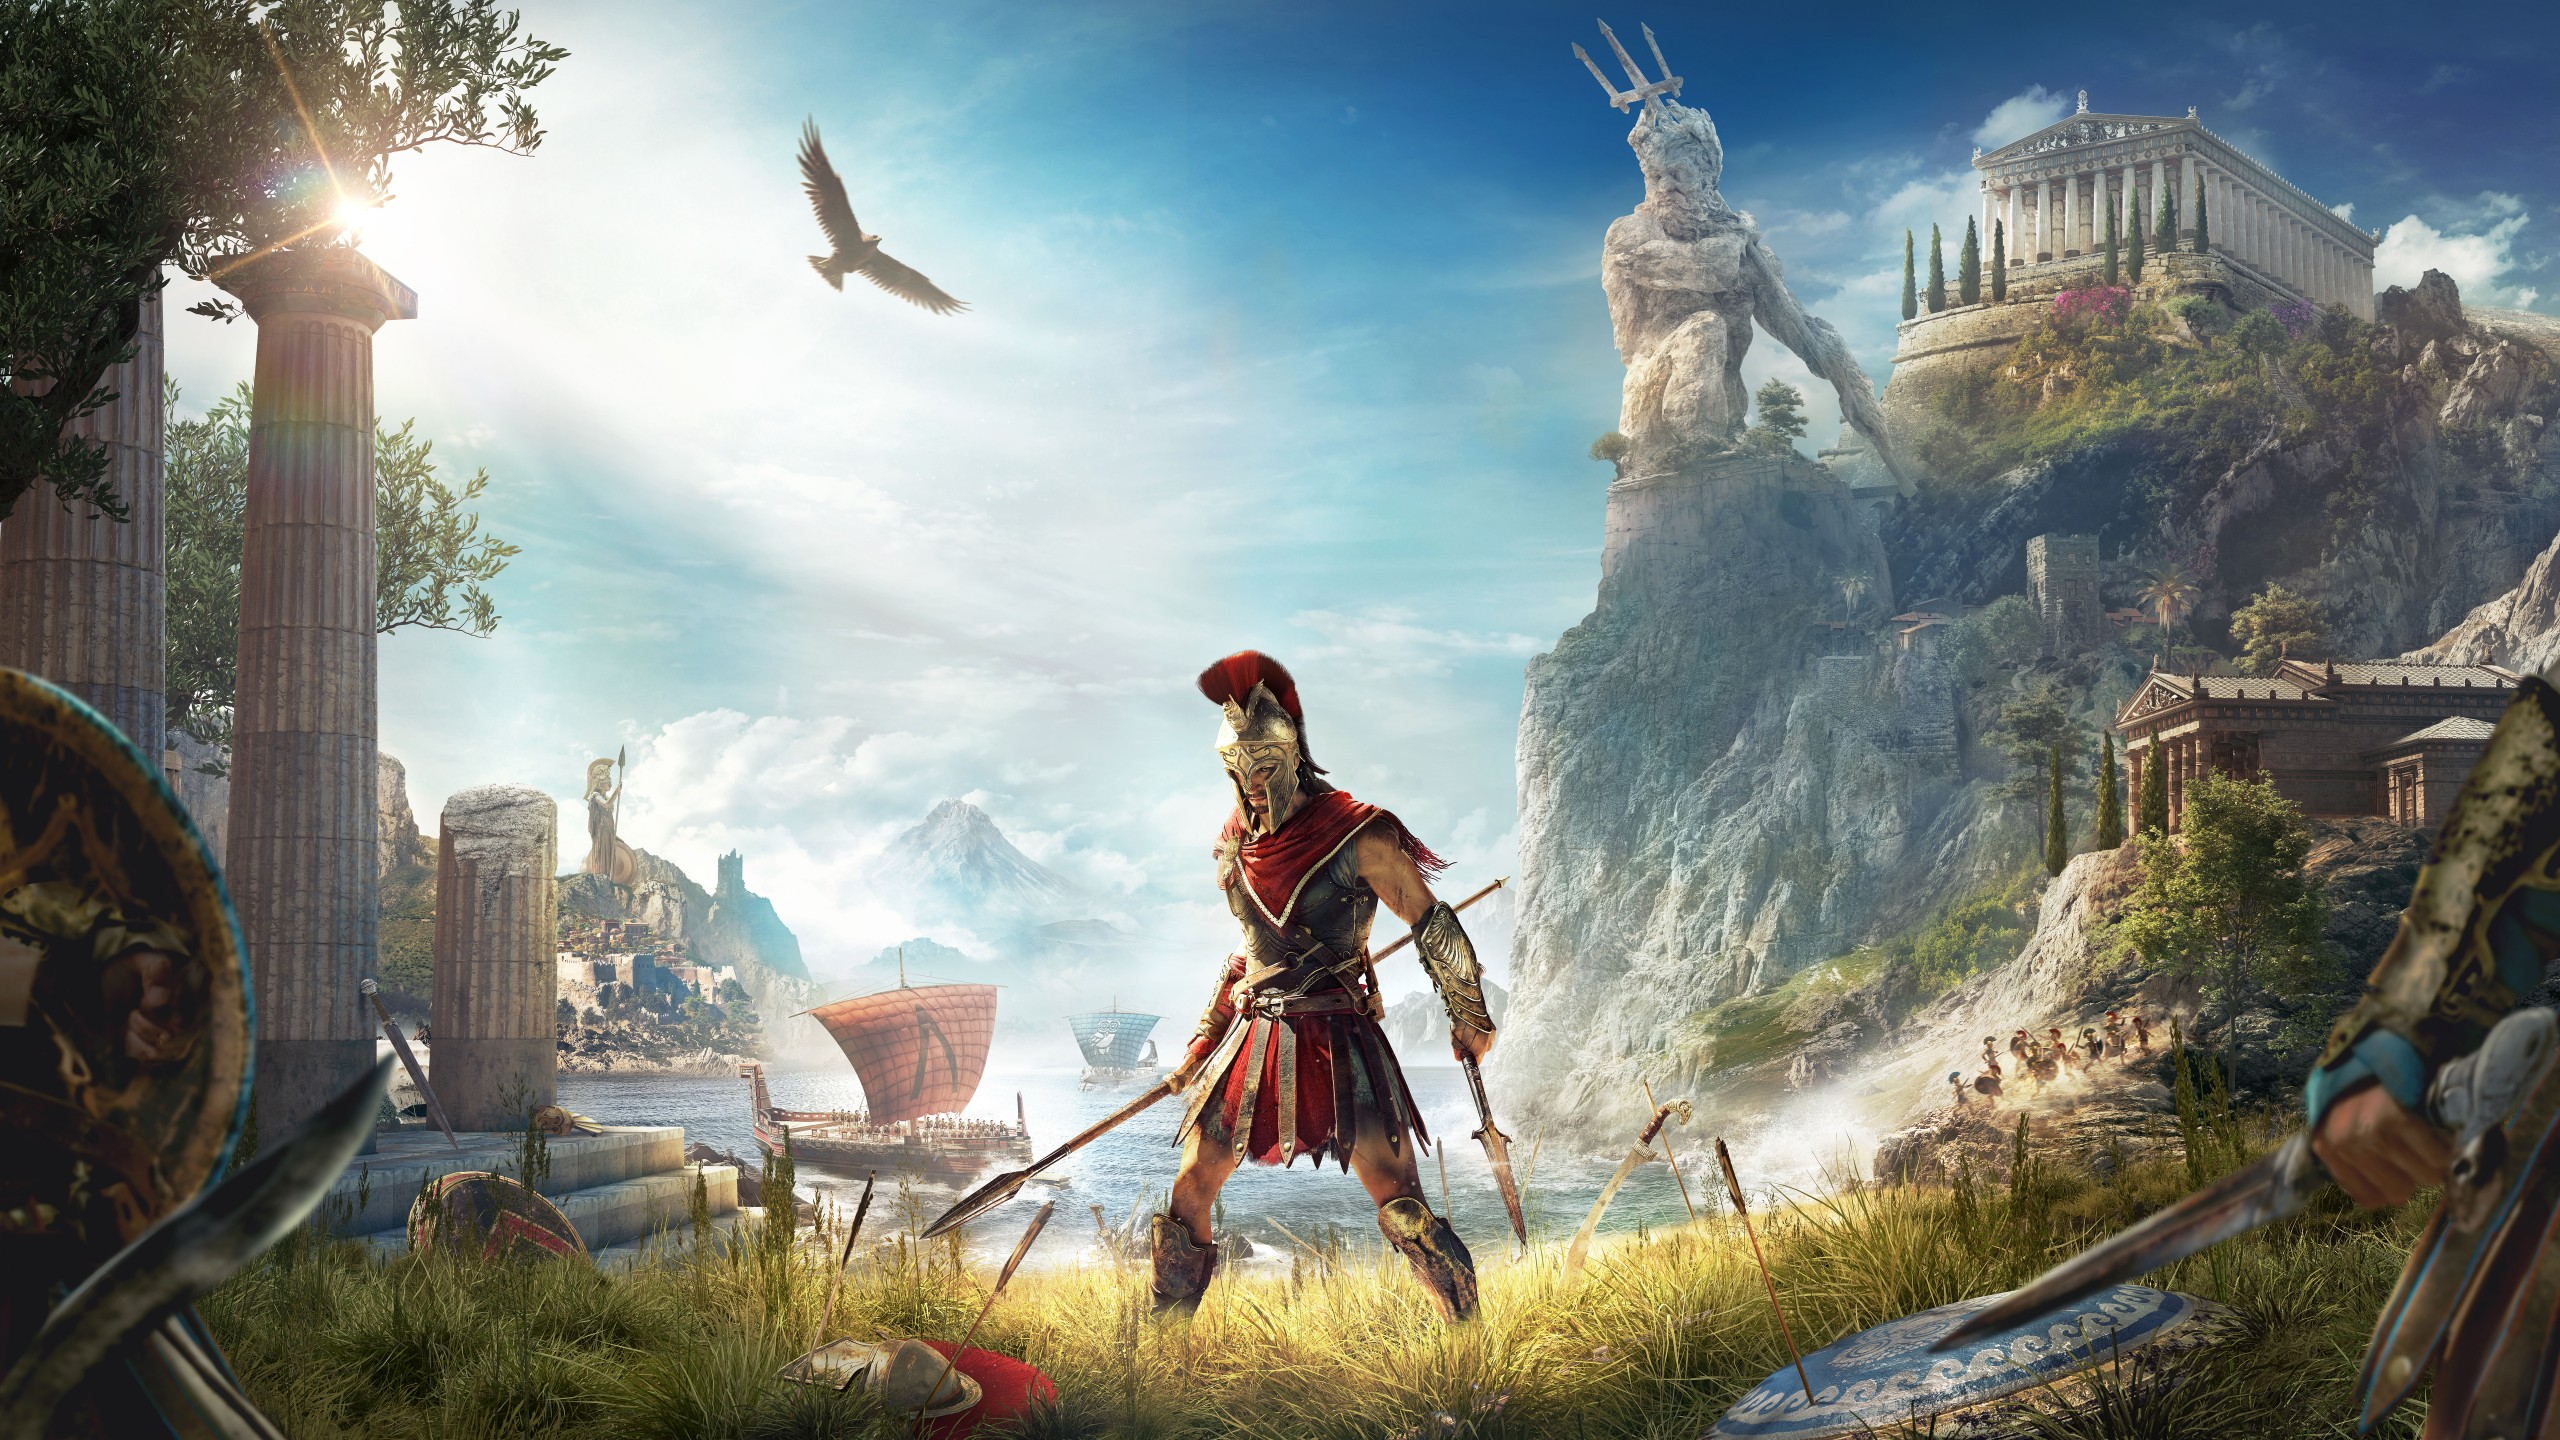 3d Ghost Wallpaper Download Assassin S Creed Odyssey 4k 8k Wallpapers Hd Wallpapers